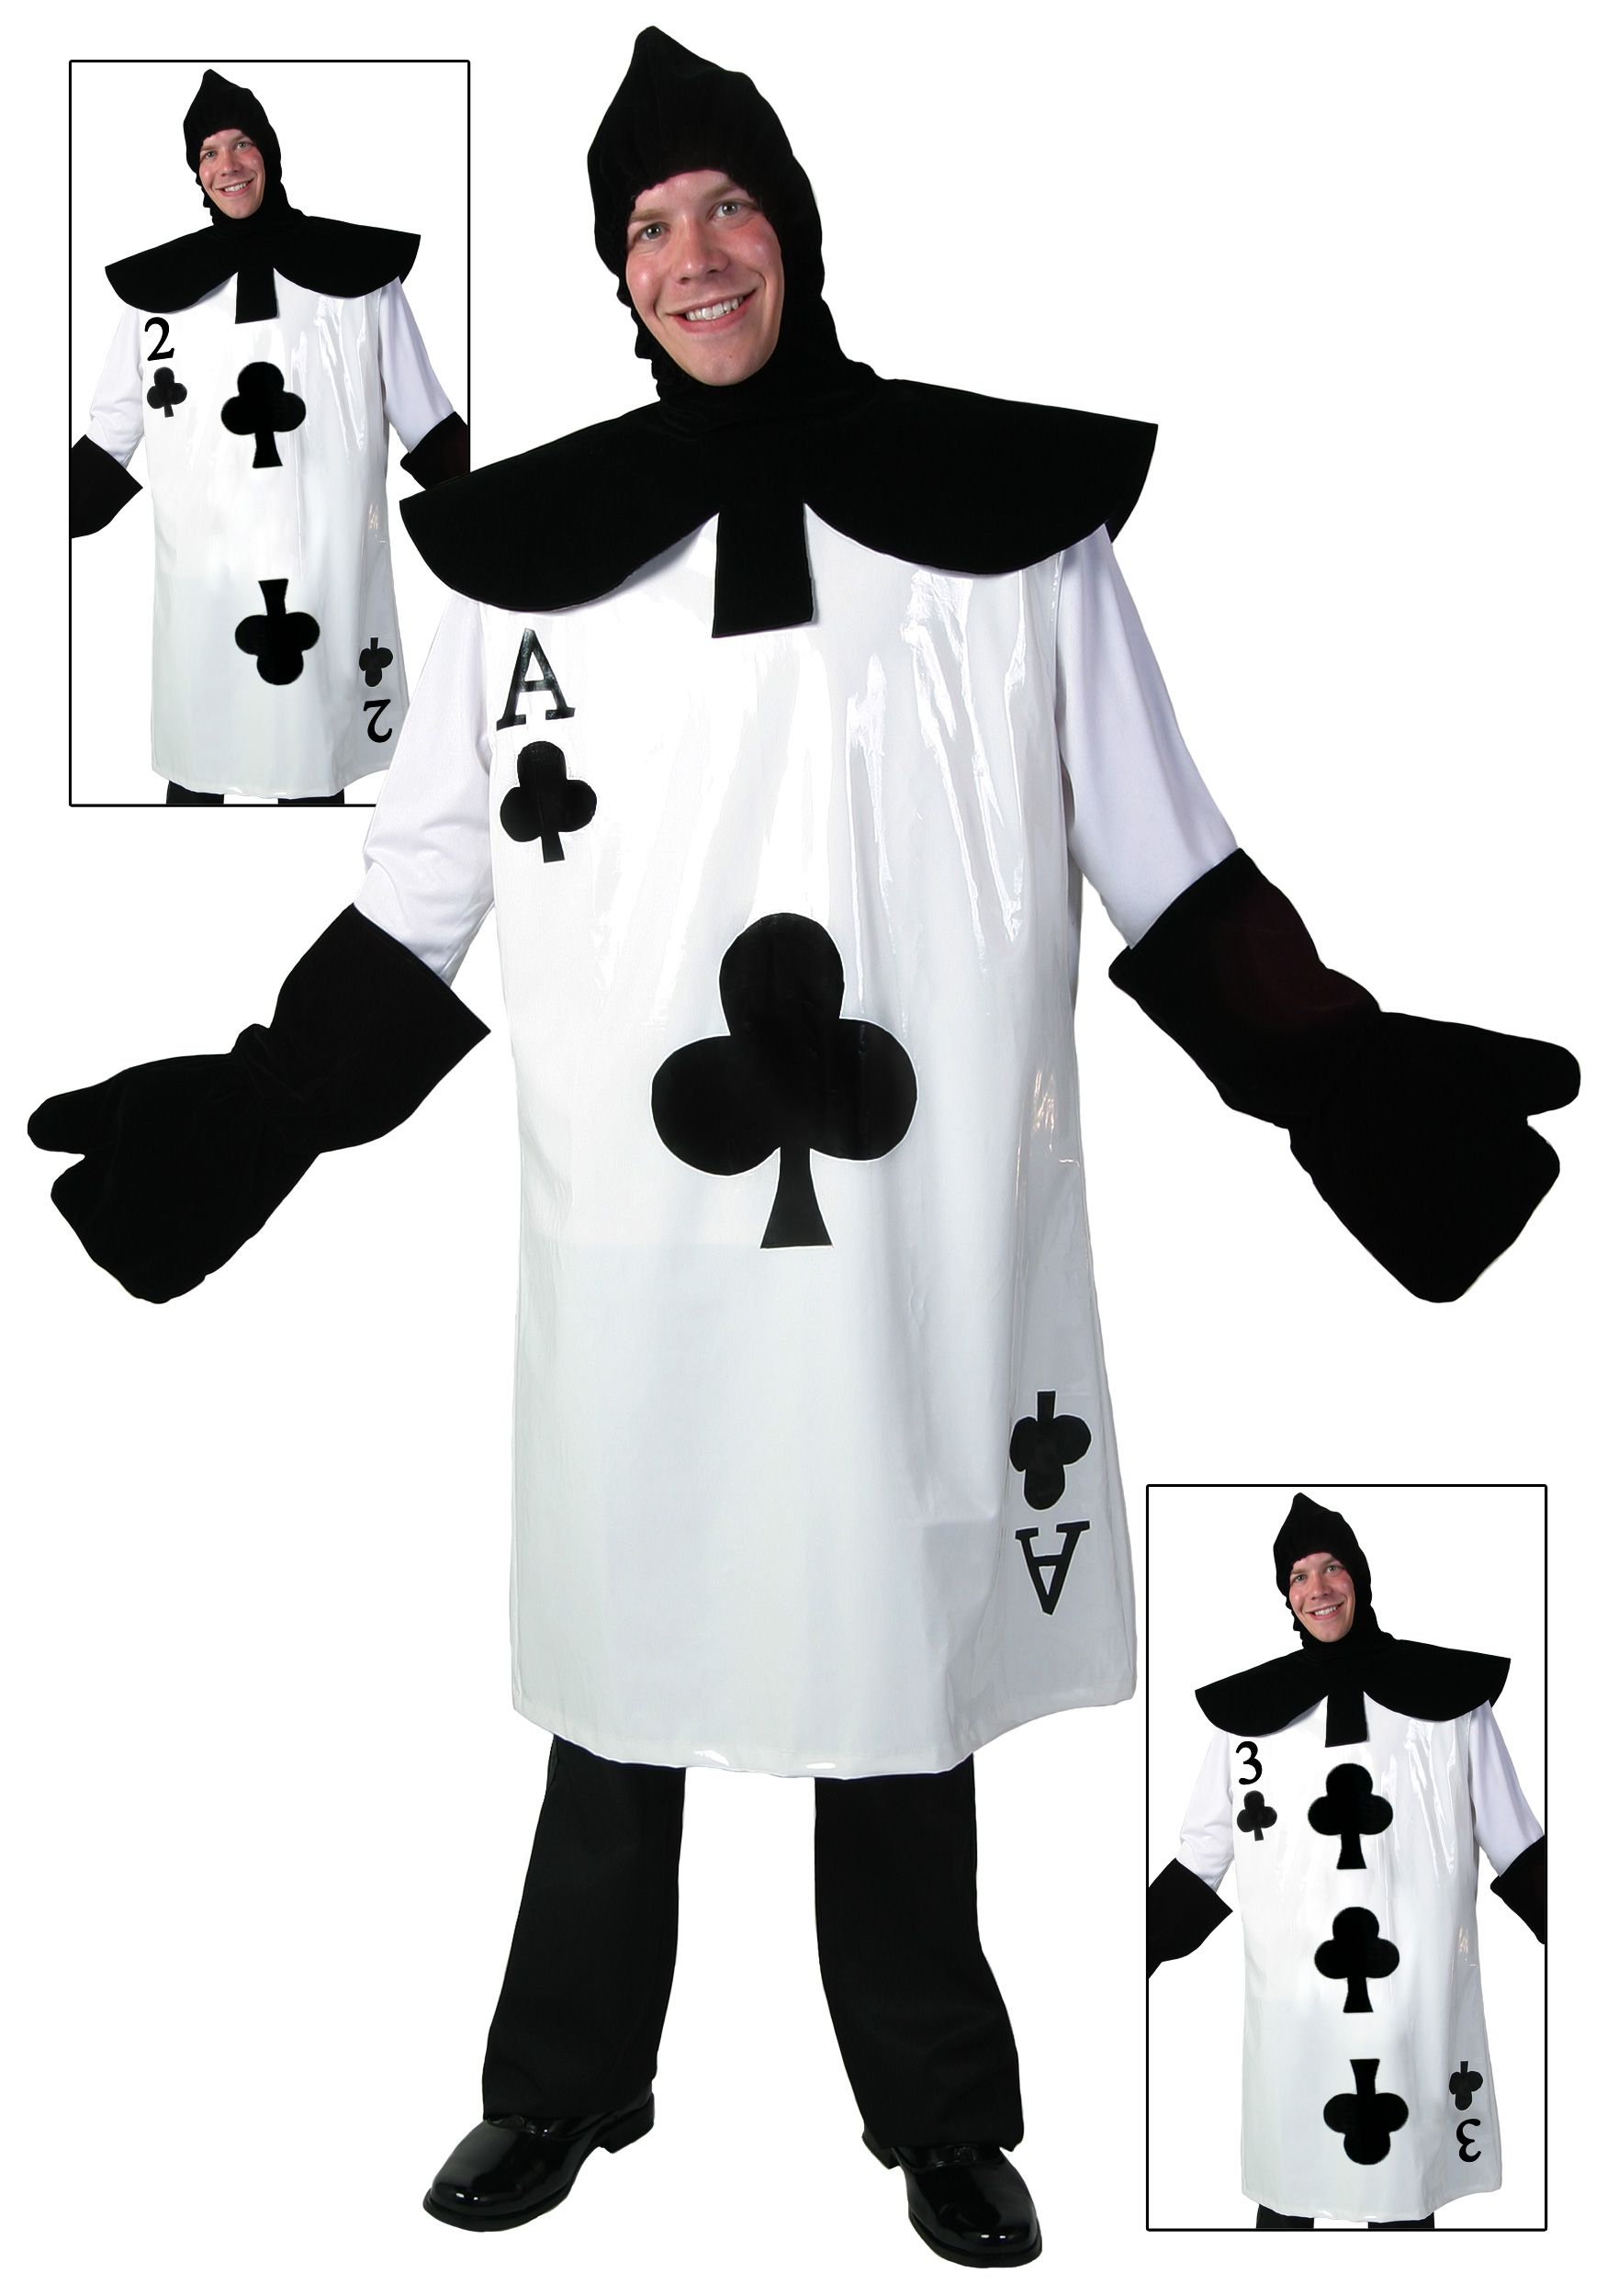 Ace Card Costume Playing Card Costumes Card Costume King Of Hearts Costume Playing Card Costume